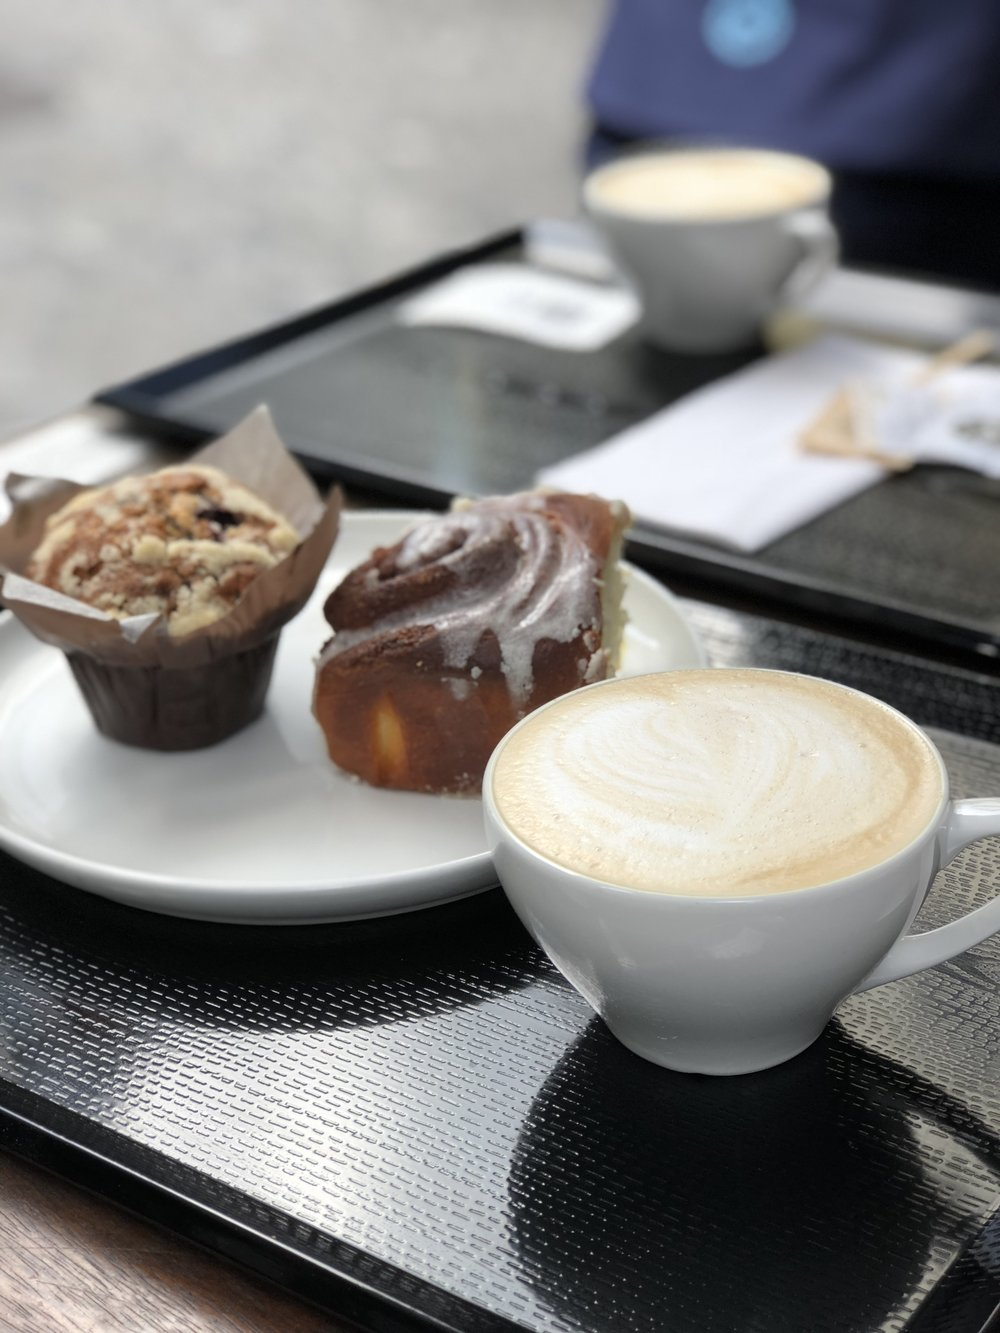 For a quick breakfast, we stopped by  delish cafe , which is nestled in the Martgasse Hotel. We grabbed a few pastries and cappuccino's before we set out for the day.